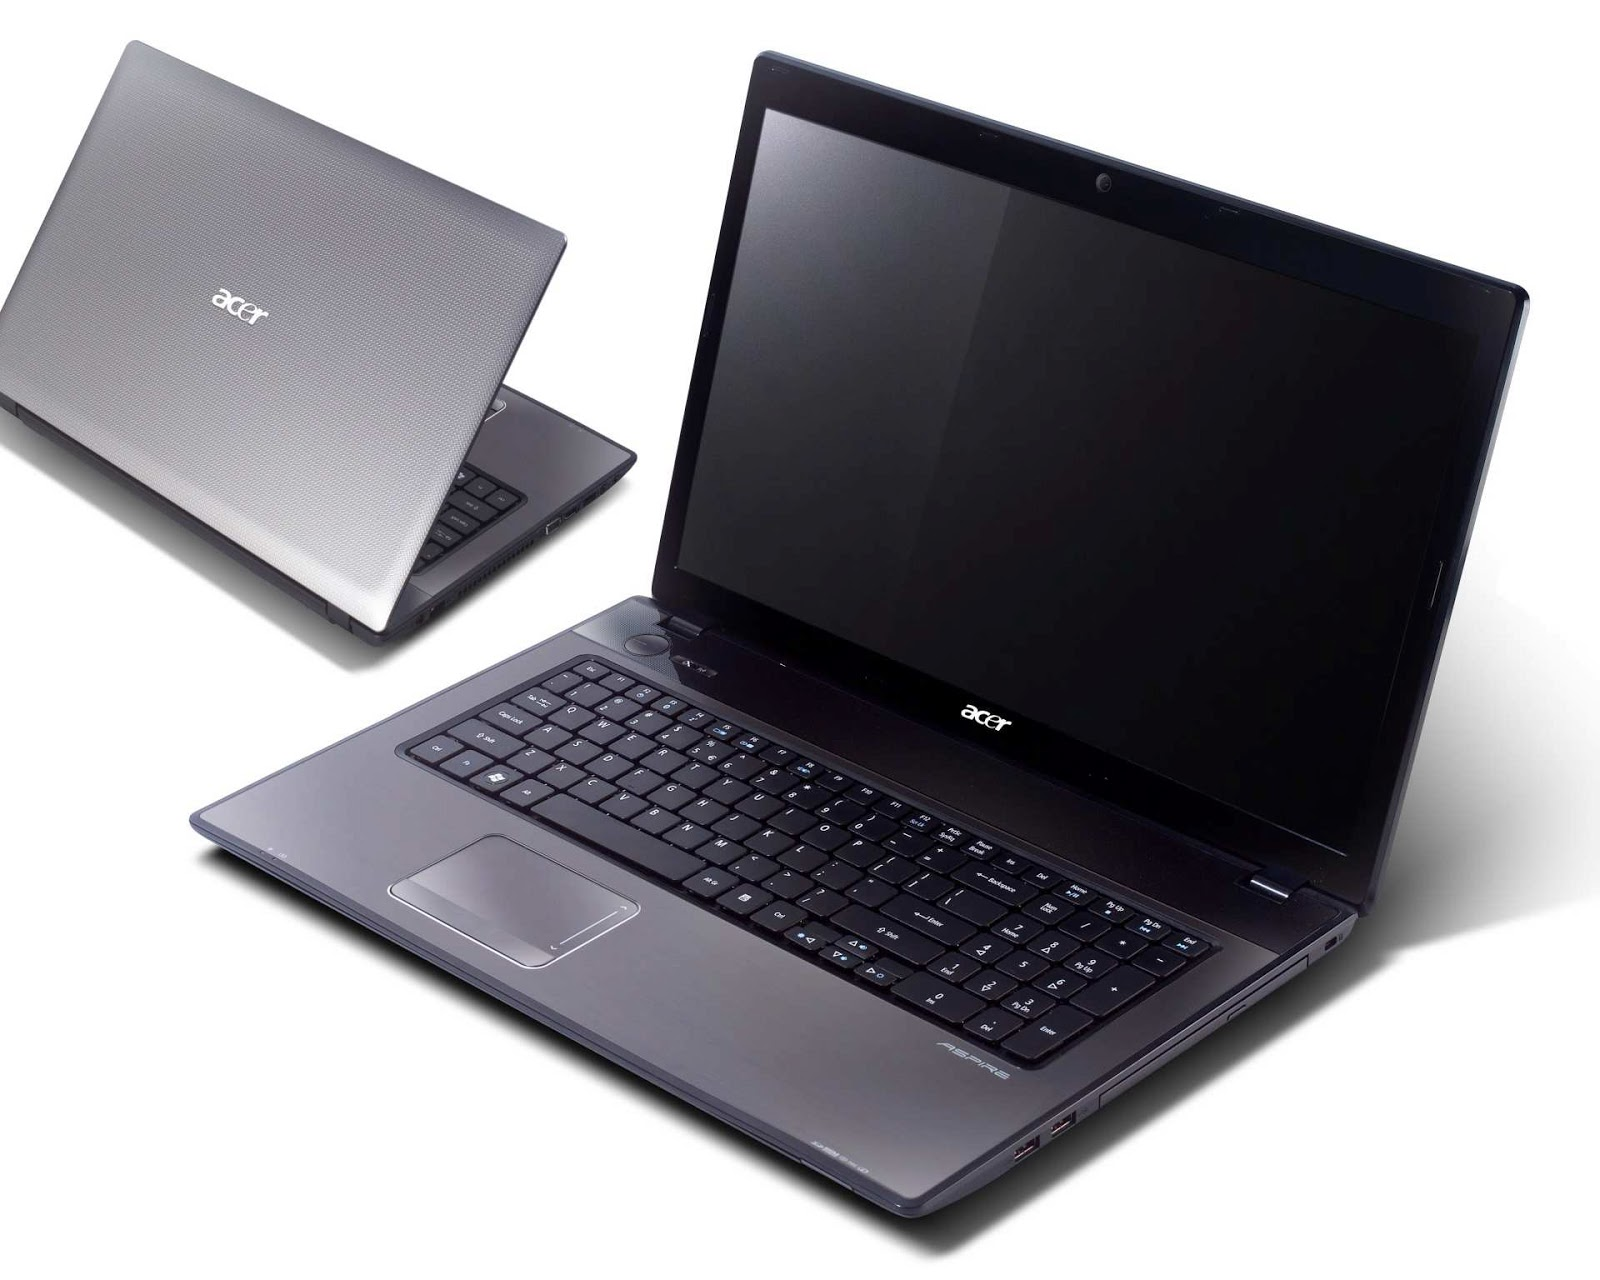 ACER ASPIRE 7741G SYNAPTICS TOUCHPAD DRIVER WINDOWS 7